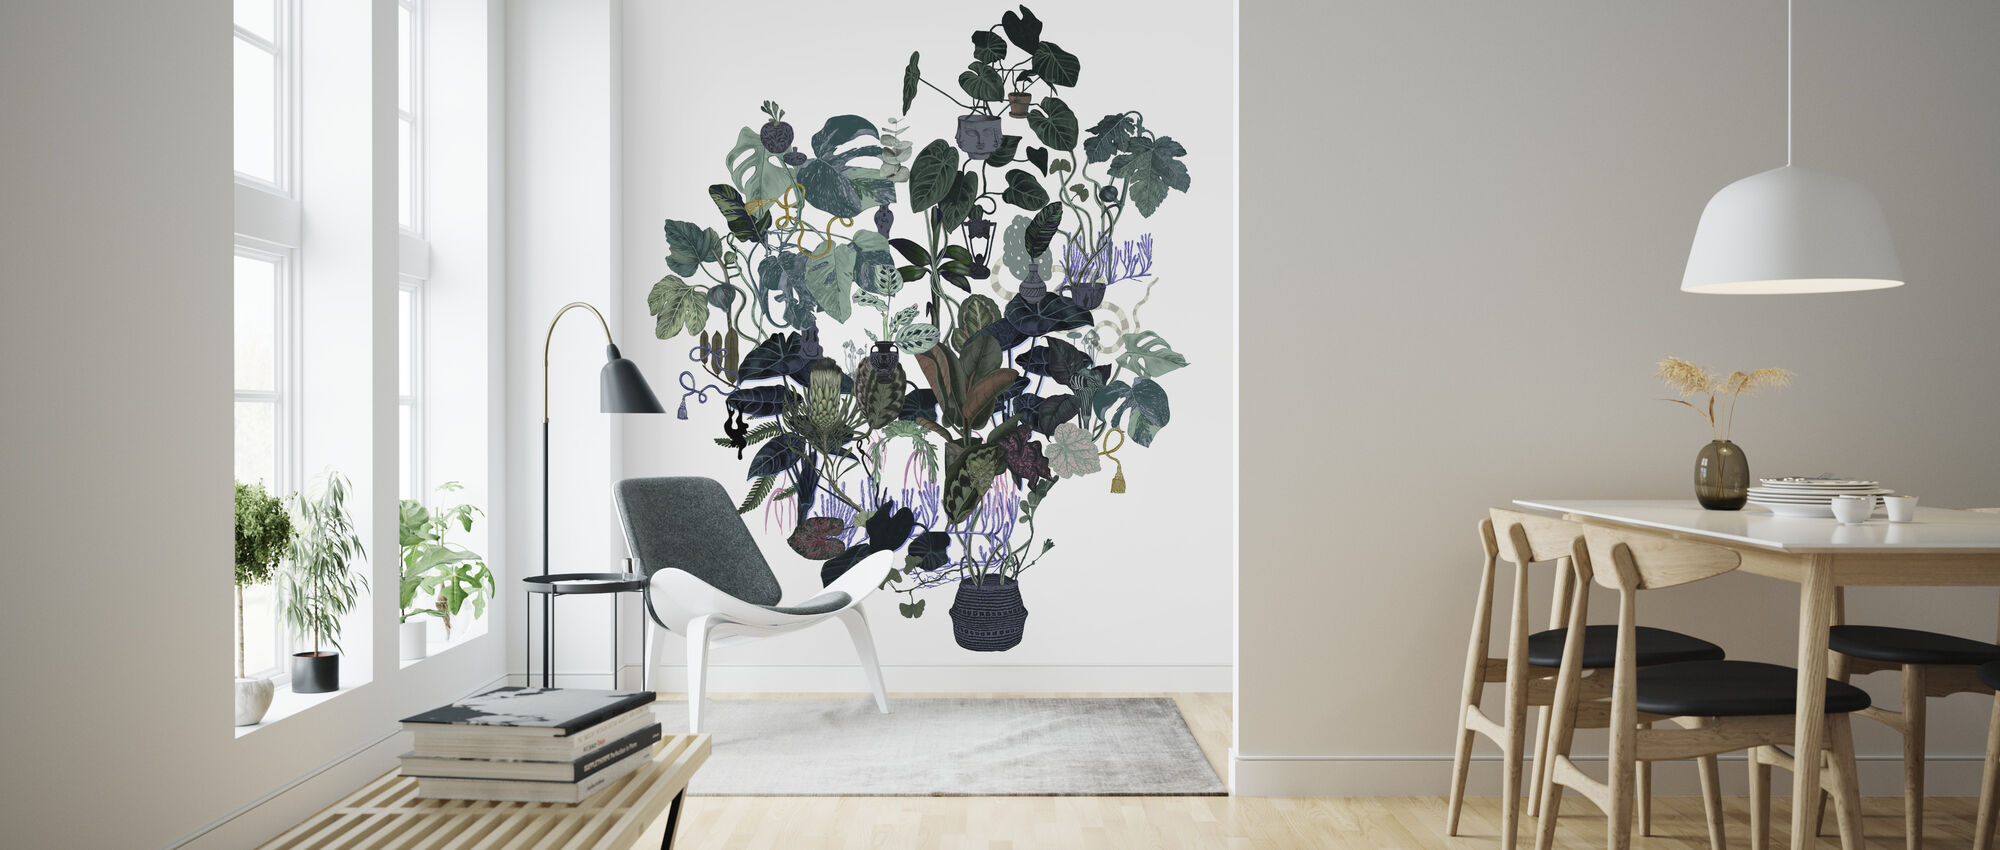 Tangled Tree - Wallpaper - Living Room